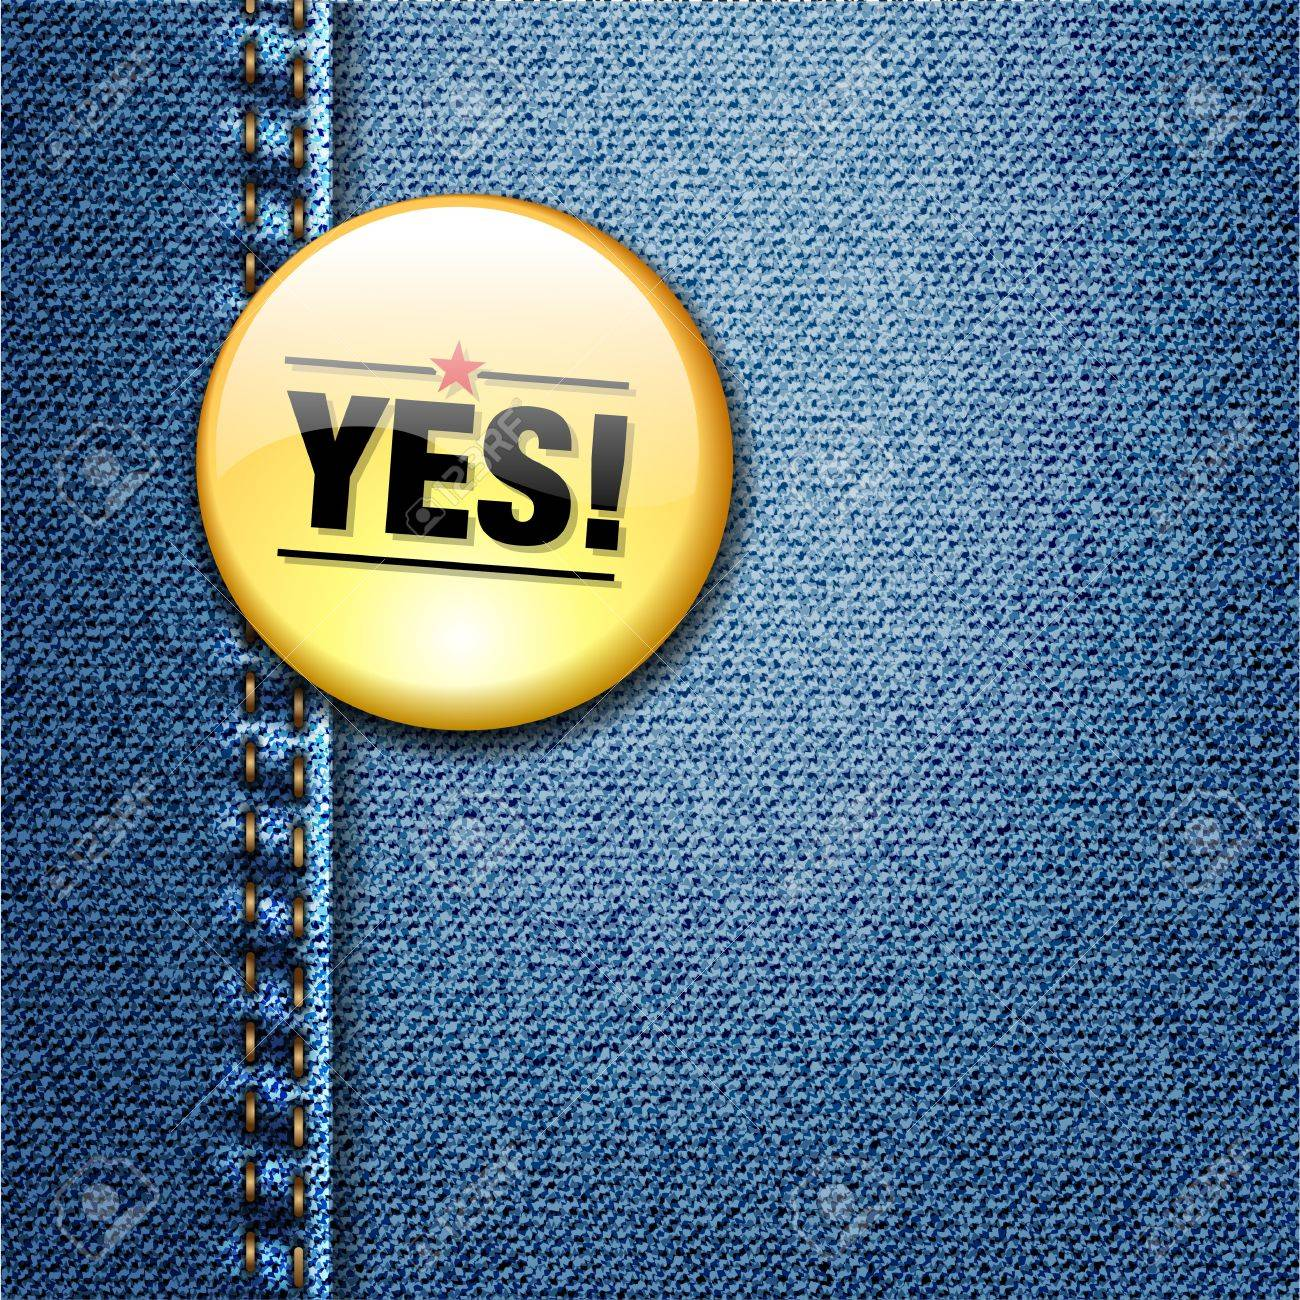 YES Word Colorful Badge on Denim Jeans Fabric Texture Stock Vector - 17584122